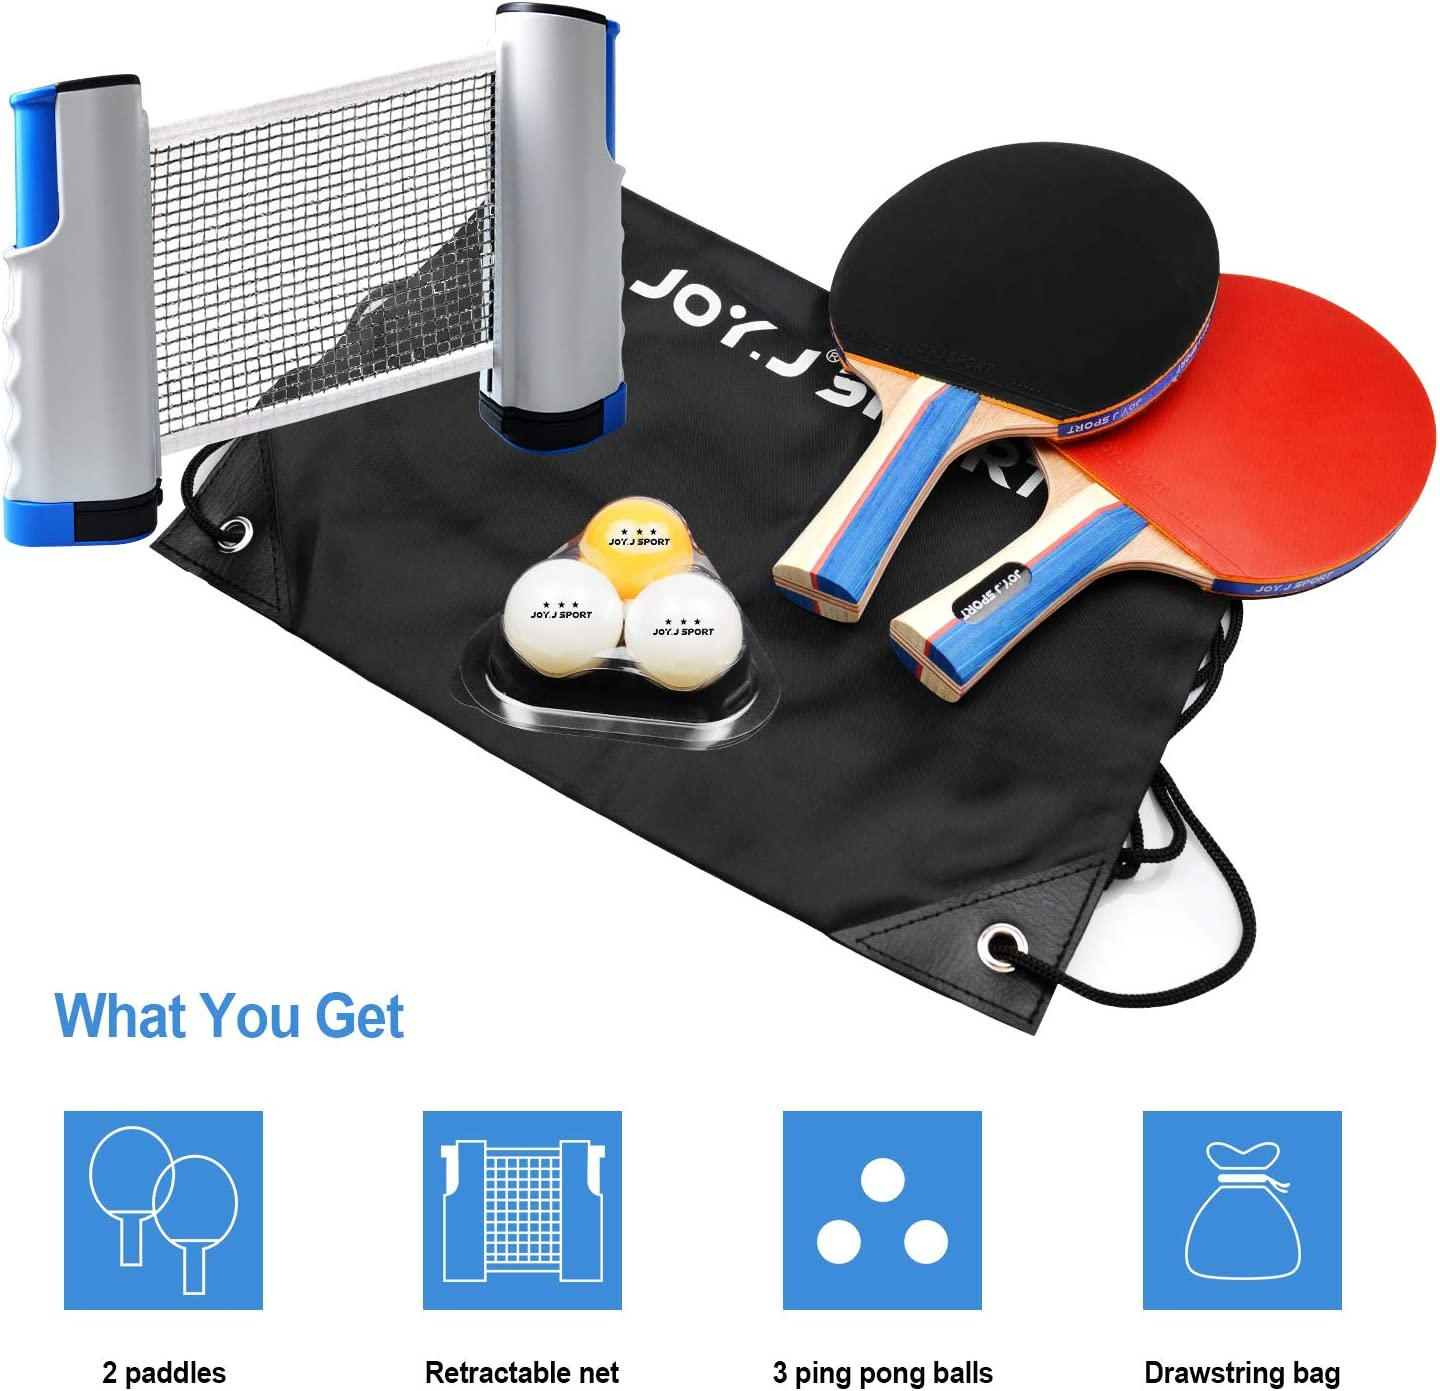 Joy.J Sport Ping Pong Paddle Set with Retractable Net 2 Premium Table Tennis Rackets Indoor or Outdoor Play Training//Recreational Racquet Kit 3 Standard 3-Star Balls Portable Cover Case Bag